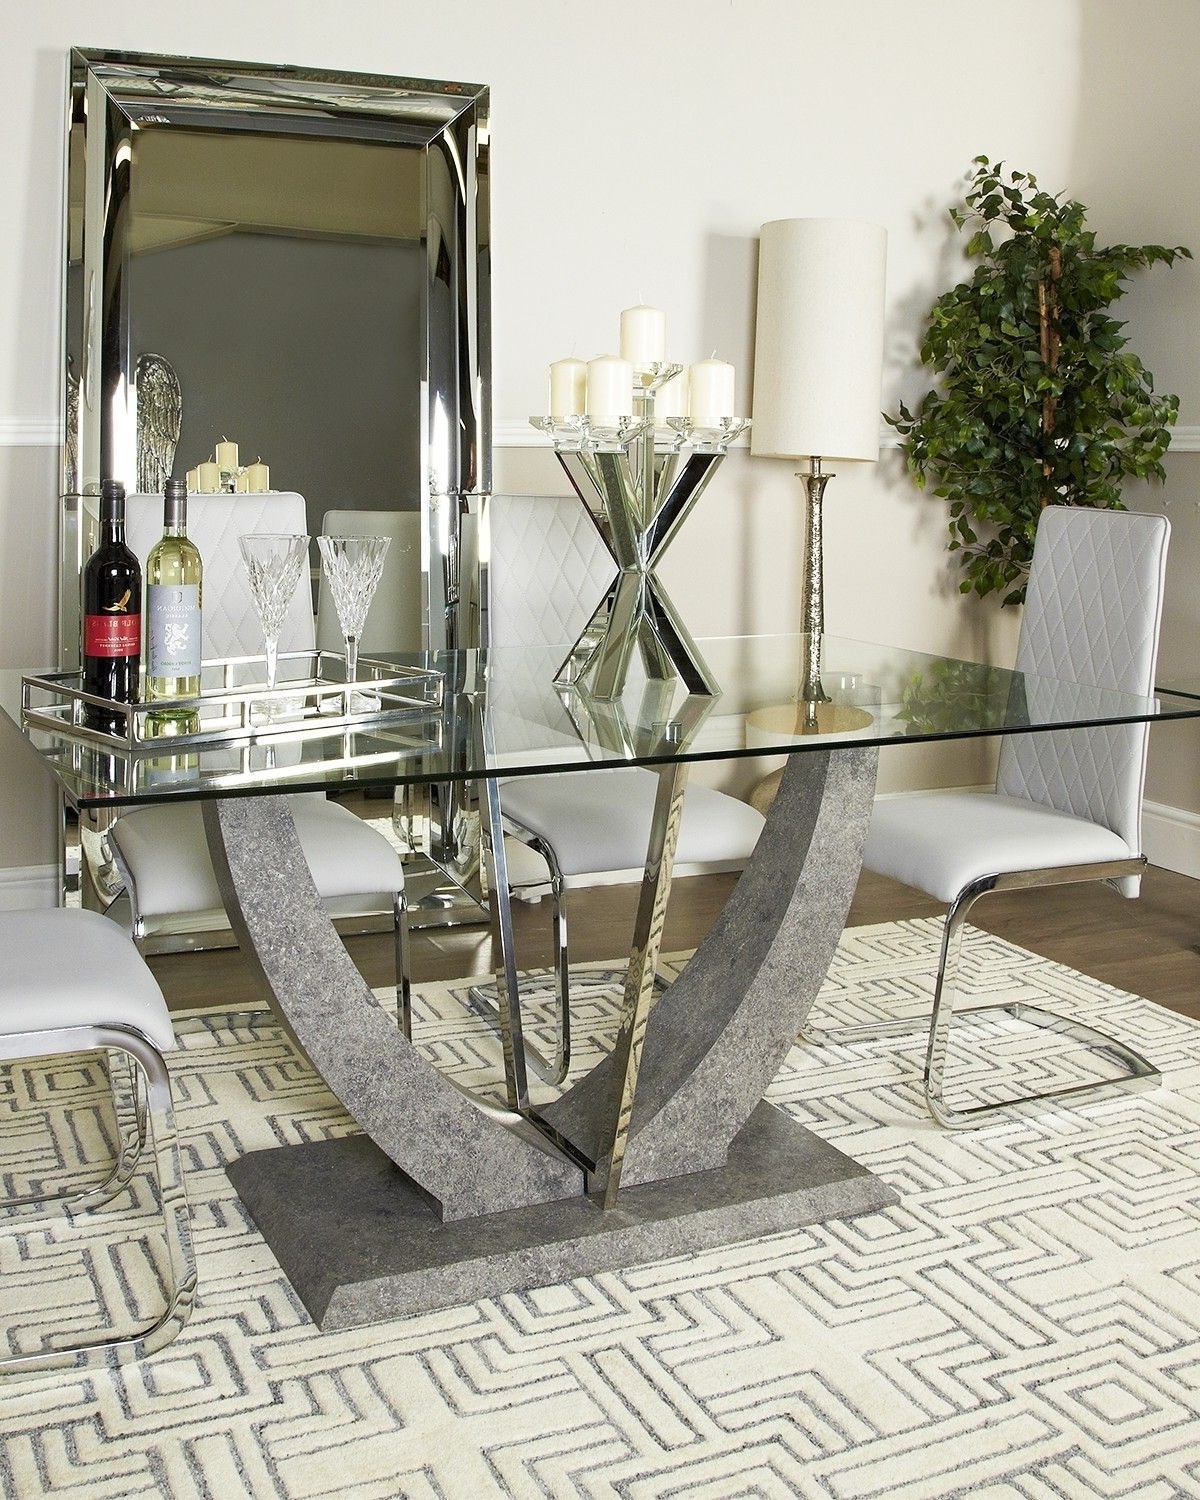 Leo Grey Glass Top Chrome Dining Table And Chairs Set With Regard To Well Known Chrome Dining Tables And Chairs (View 20 of 25)